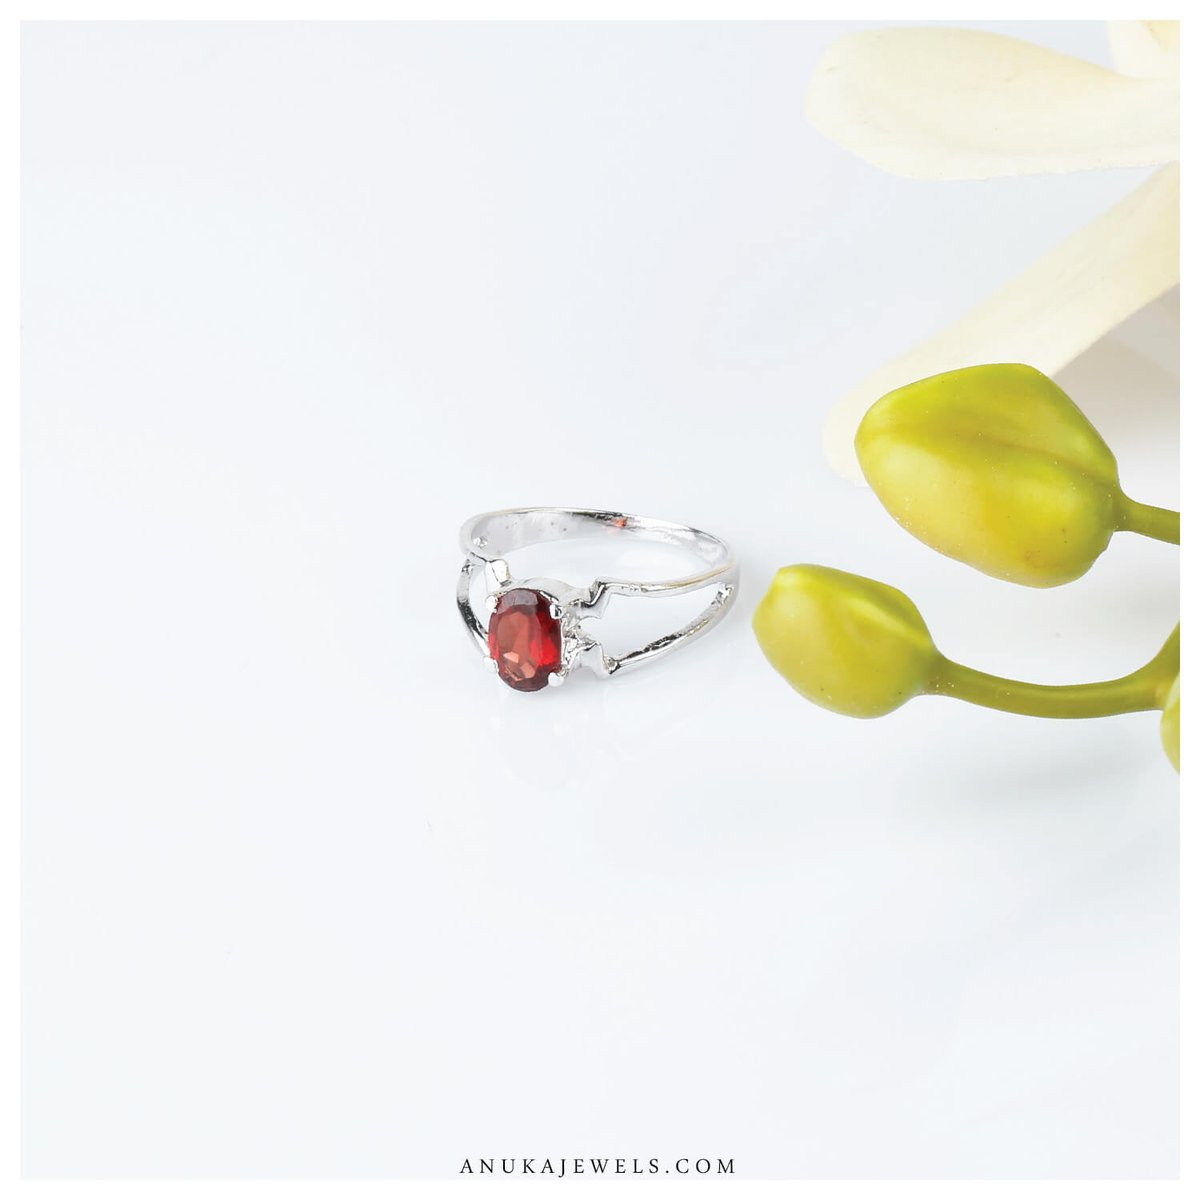 Uniquely designed silver garnet ring. Make a call now : 7300044750 OR Shop at  #Jewelry #Birthstonejewelry  #Garnetjewelry #Beauty #Silver #Style #Garnetring #Anuka #Gemstones #Silverring #Online #Shop #Ring #January #Shopbybirthstone #Redring #Offers